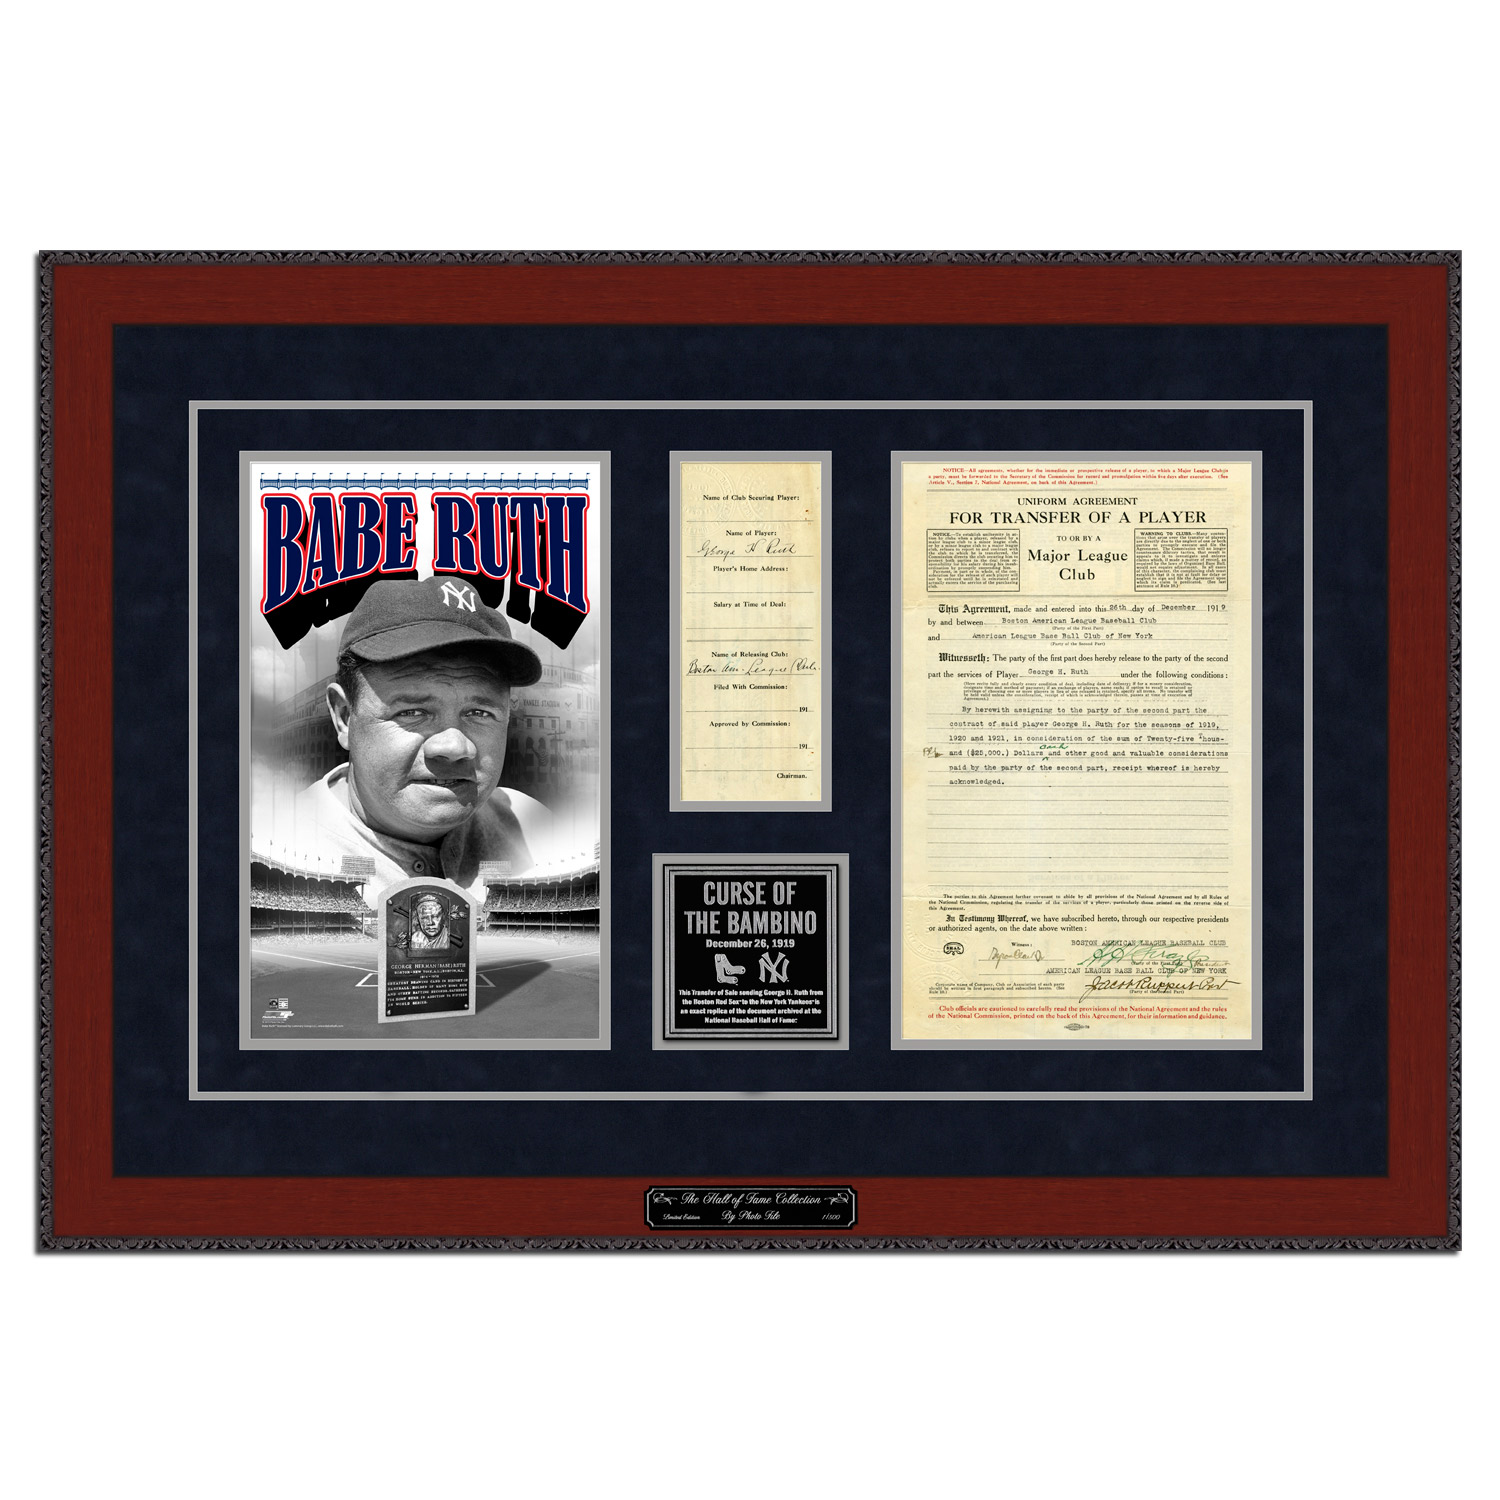 "New York Yankees Babe Ruth 23.5"" x 33.5"" Framed Limited Edition Replica Transfer Contract - No Size"